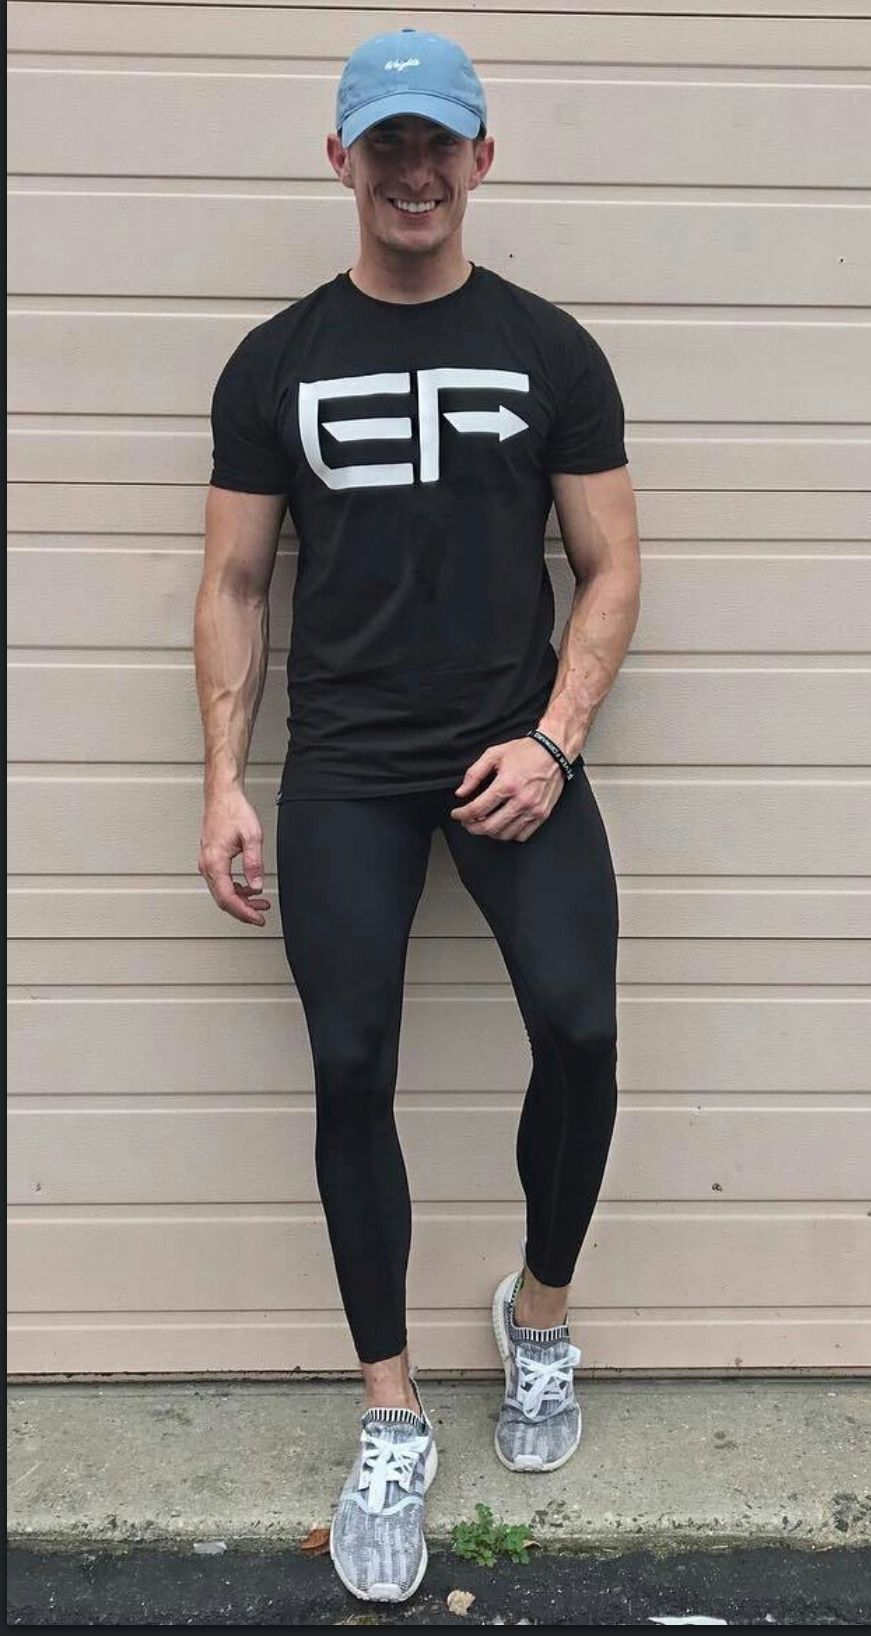 46 Awesome Sporty Mens Activewear Ideas To Wear Everyday Fashionssories Com Ropa Gym Hombre Ropa De Moda Hombre Ropa Deportiva Para Hombre